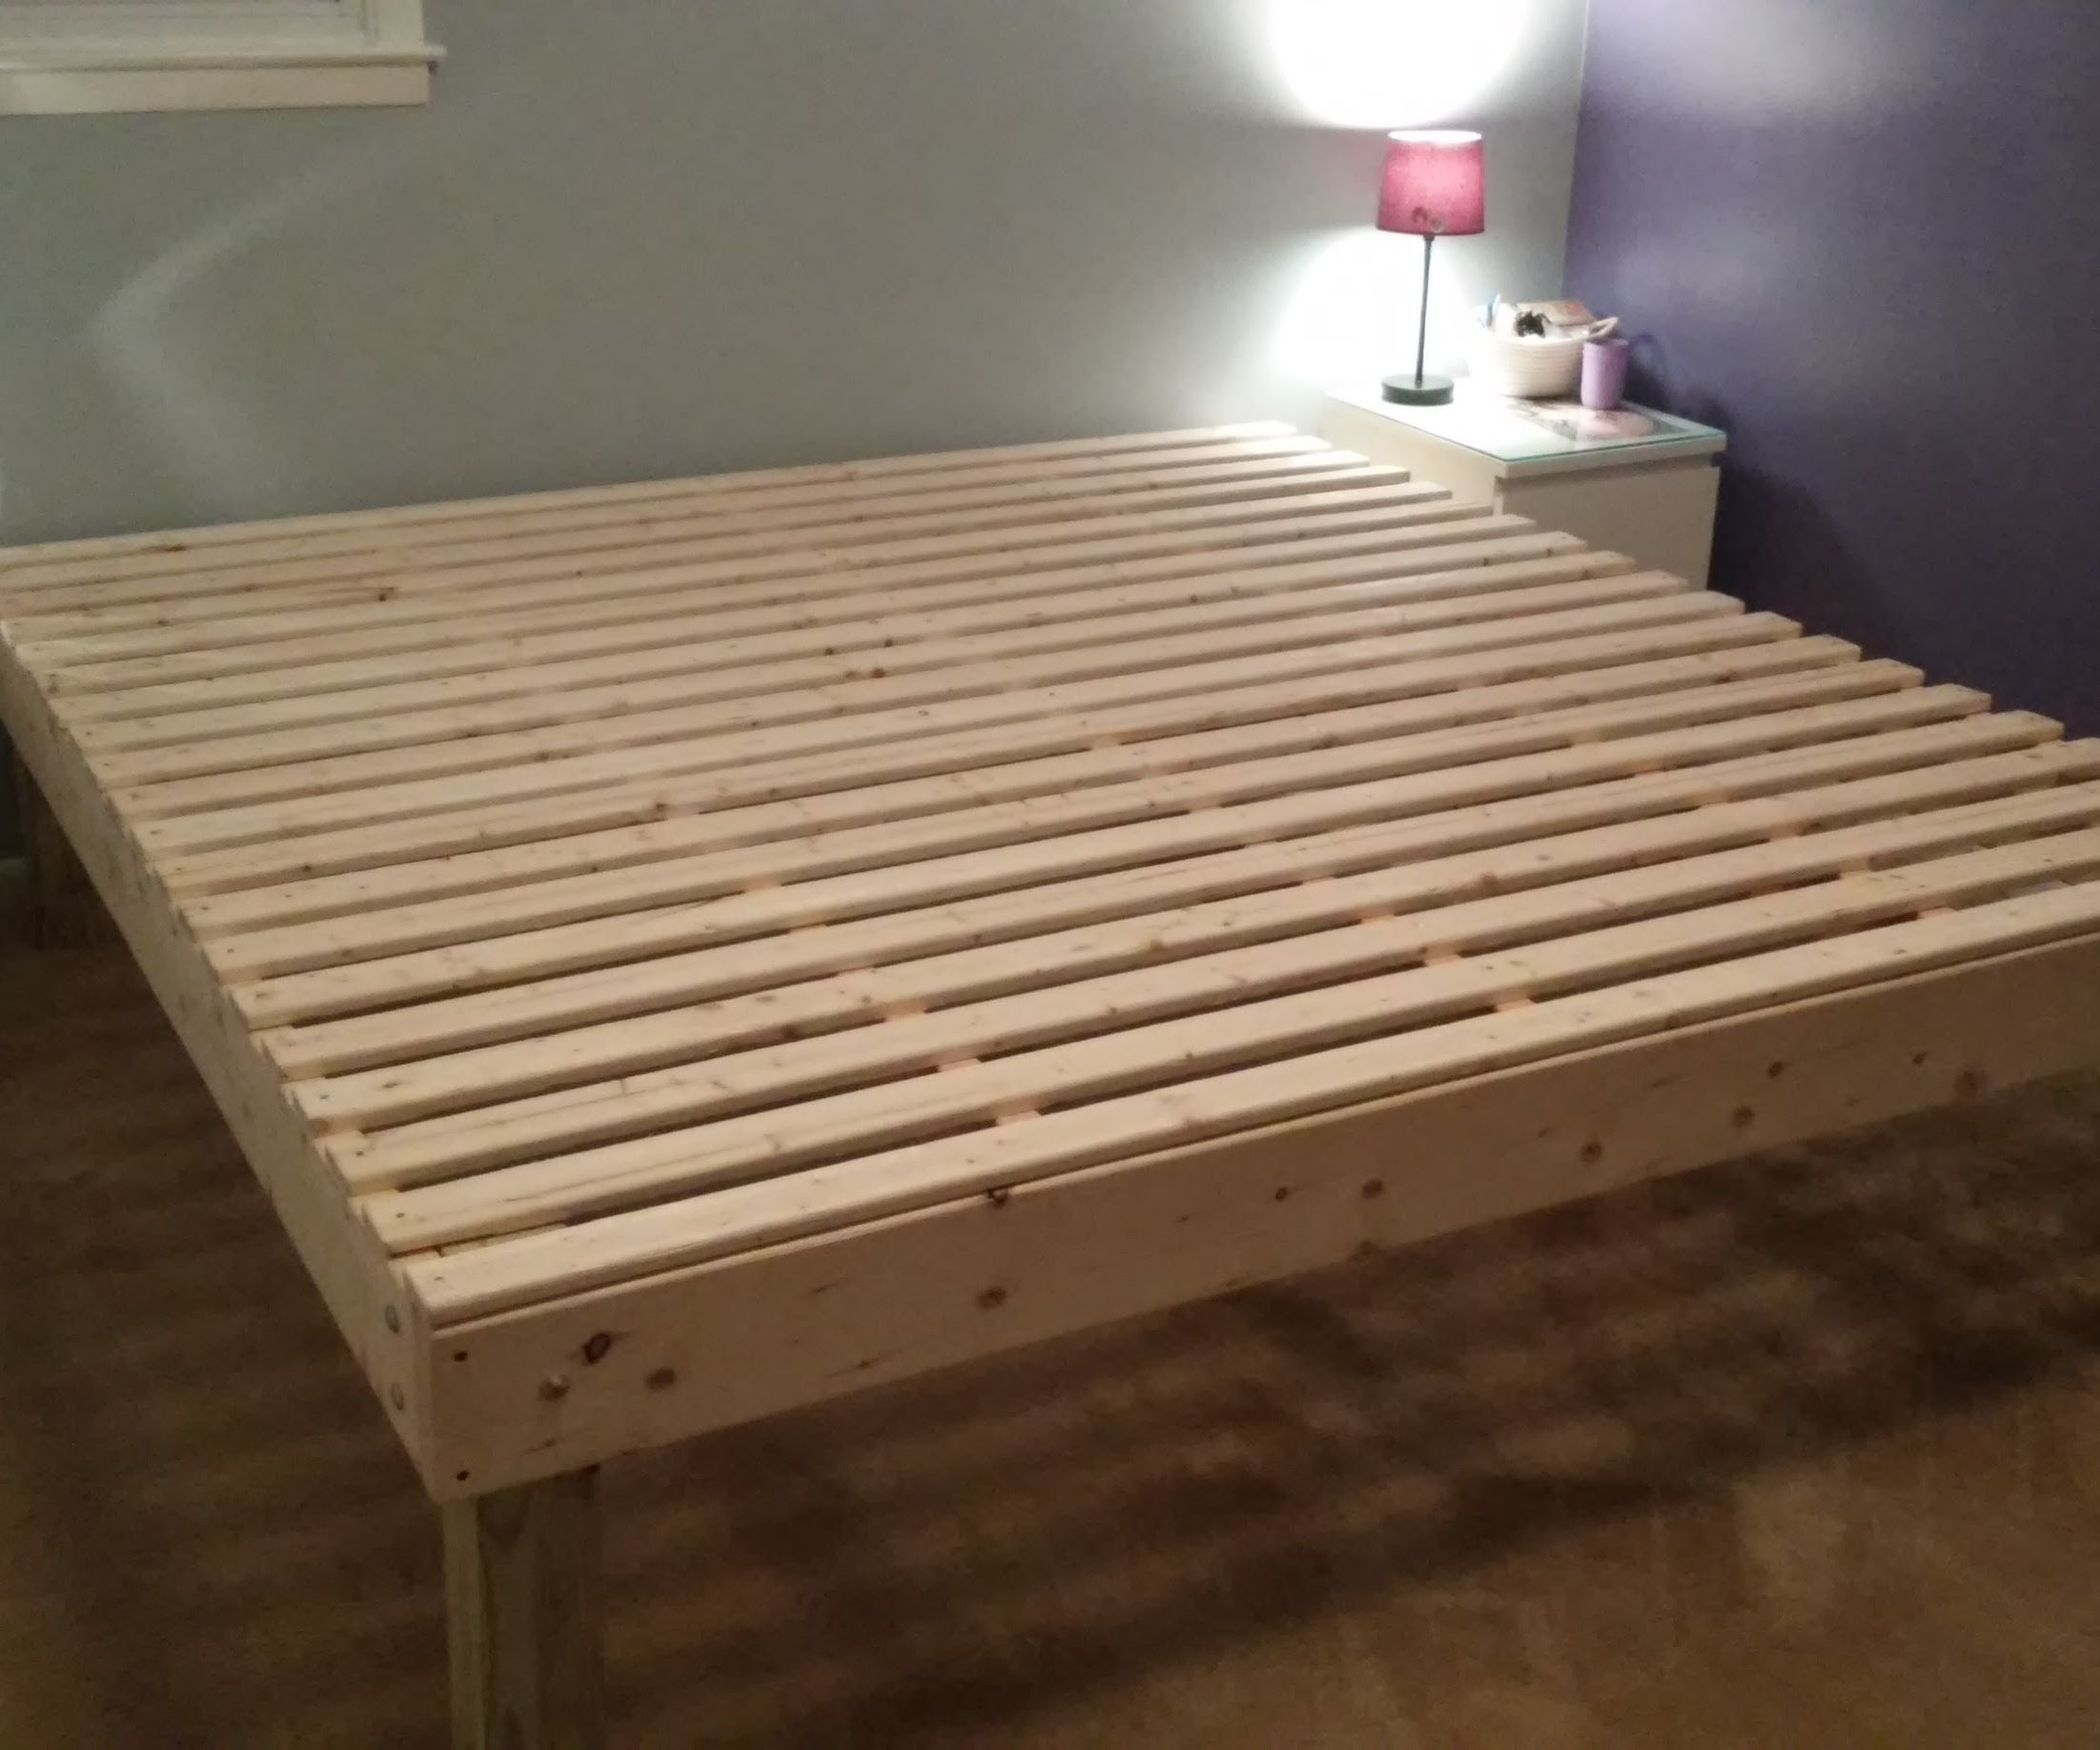 Foam Mattress Bed Frame For Under 100 Foam Mattress Bed Frame Bed Frame Mattress Diy King Bed Frame